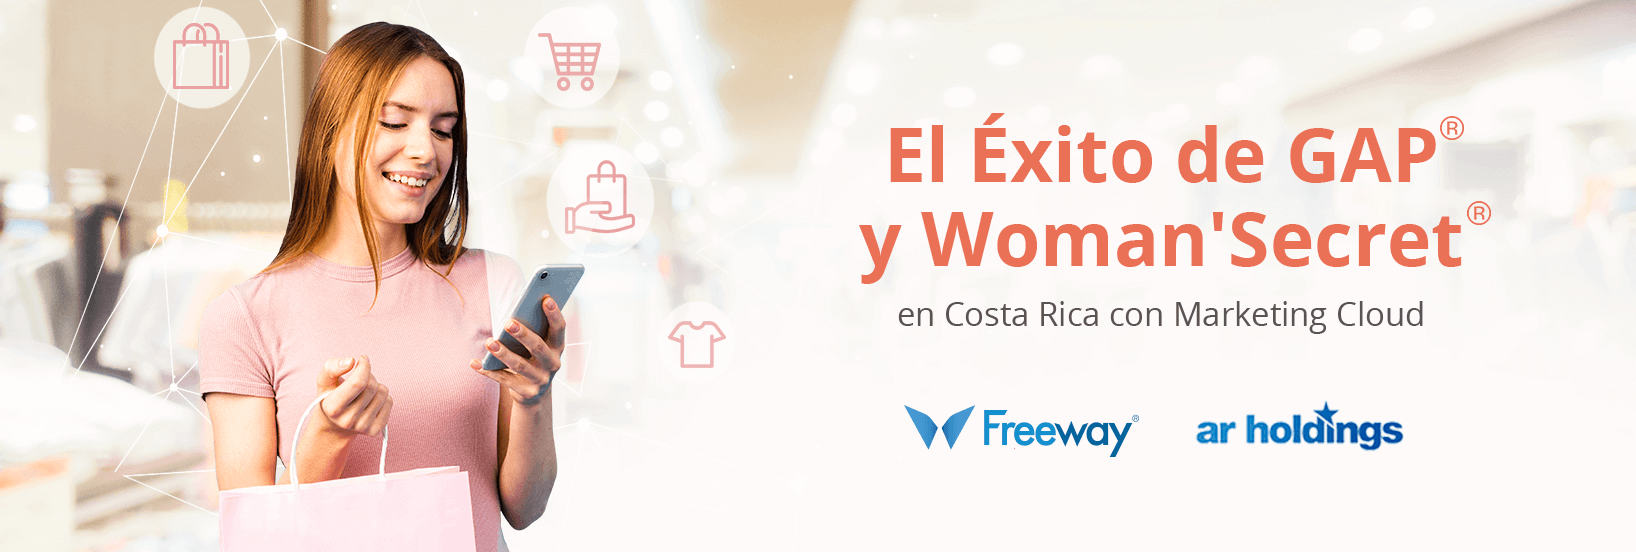 El Éxito de Gap y Woman's secret en Costa Rica con Marketing Cloud